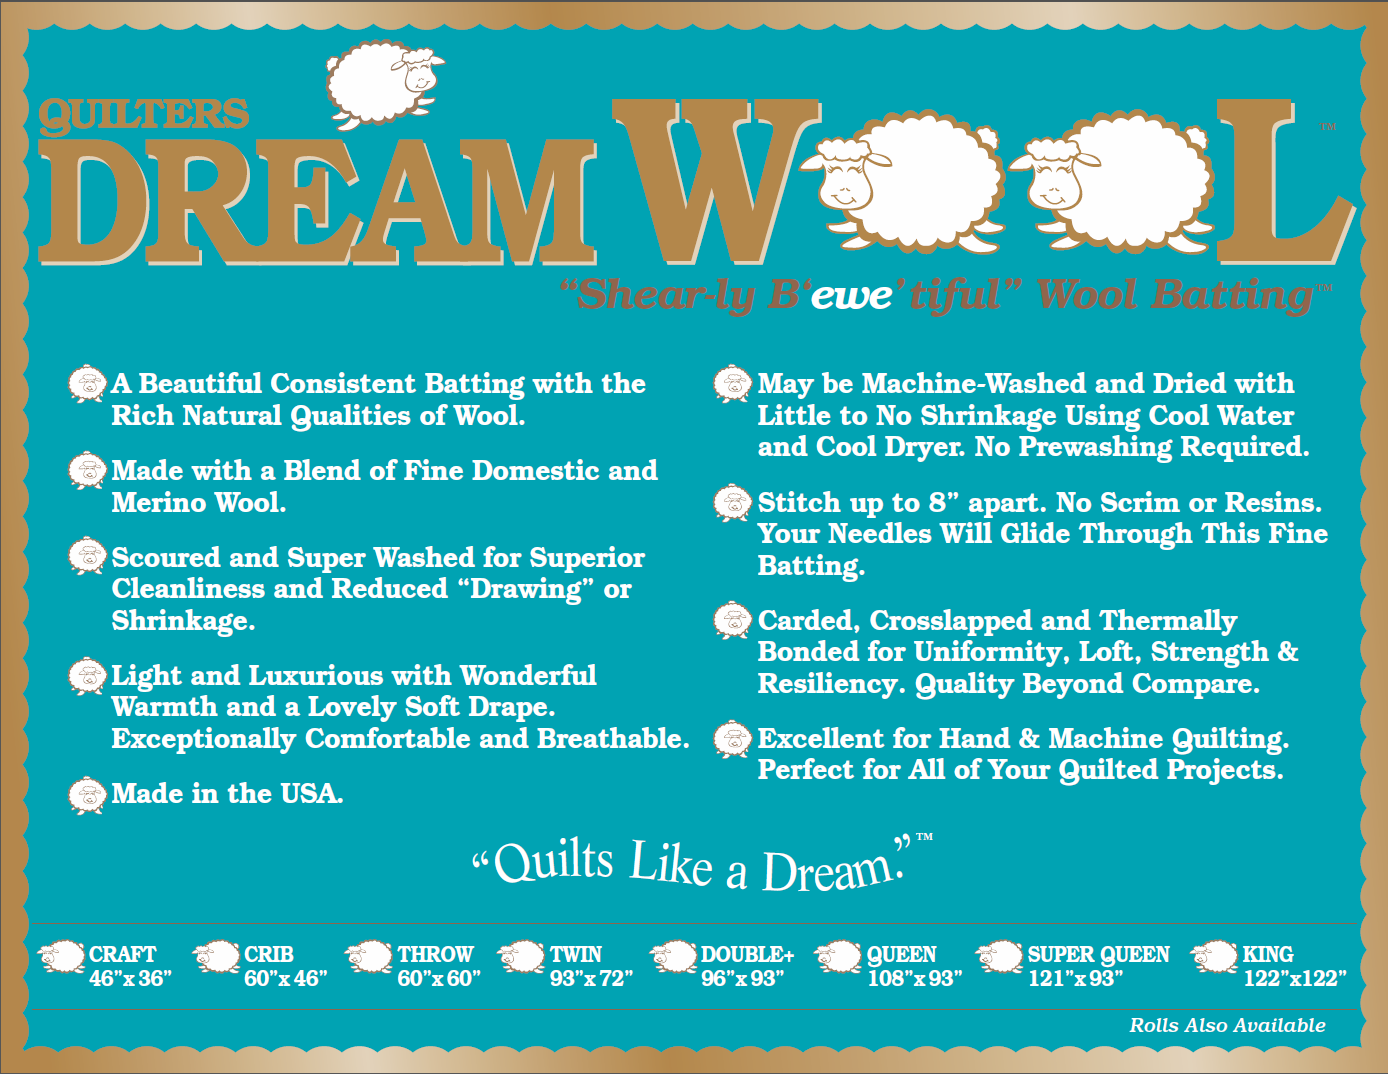 Queen Dream Wool by Quilters Dream